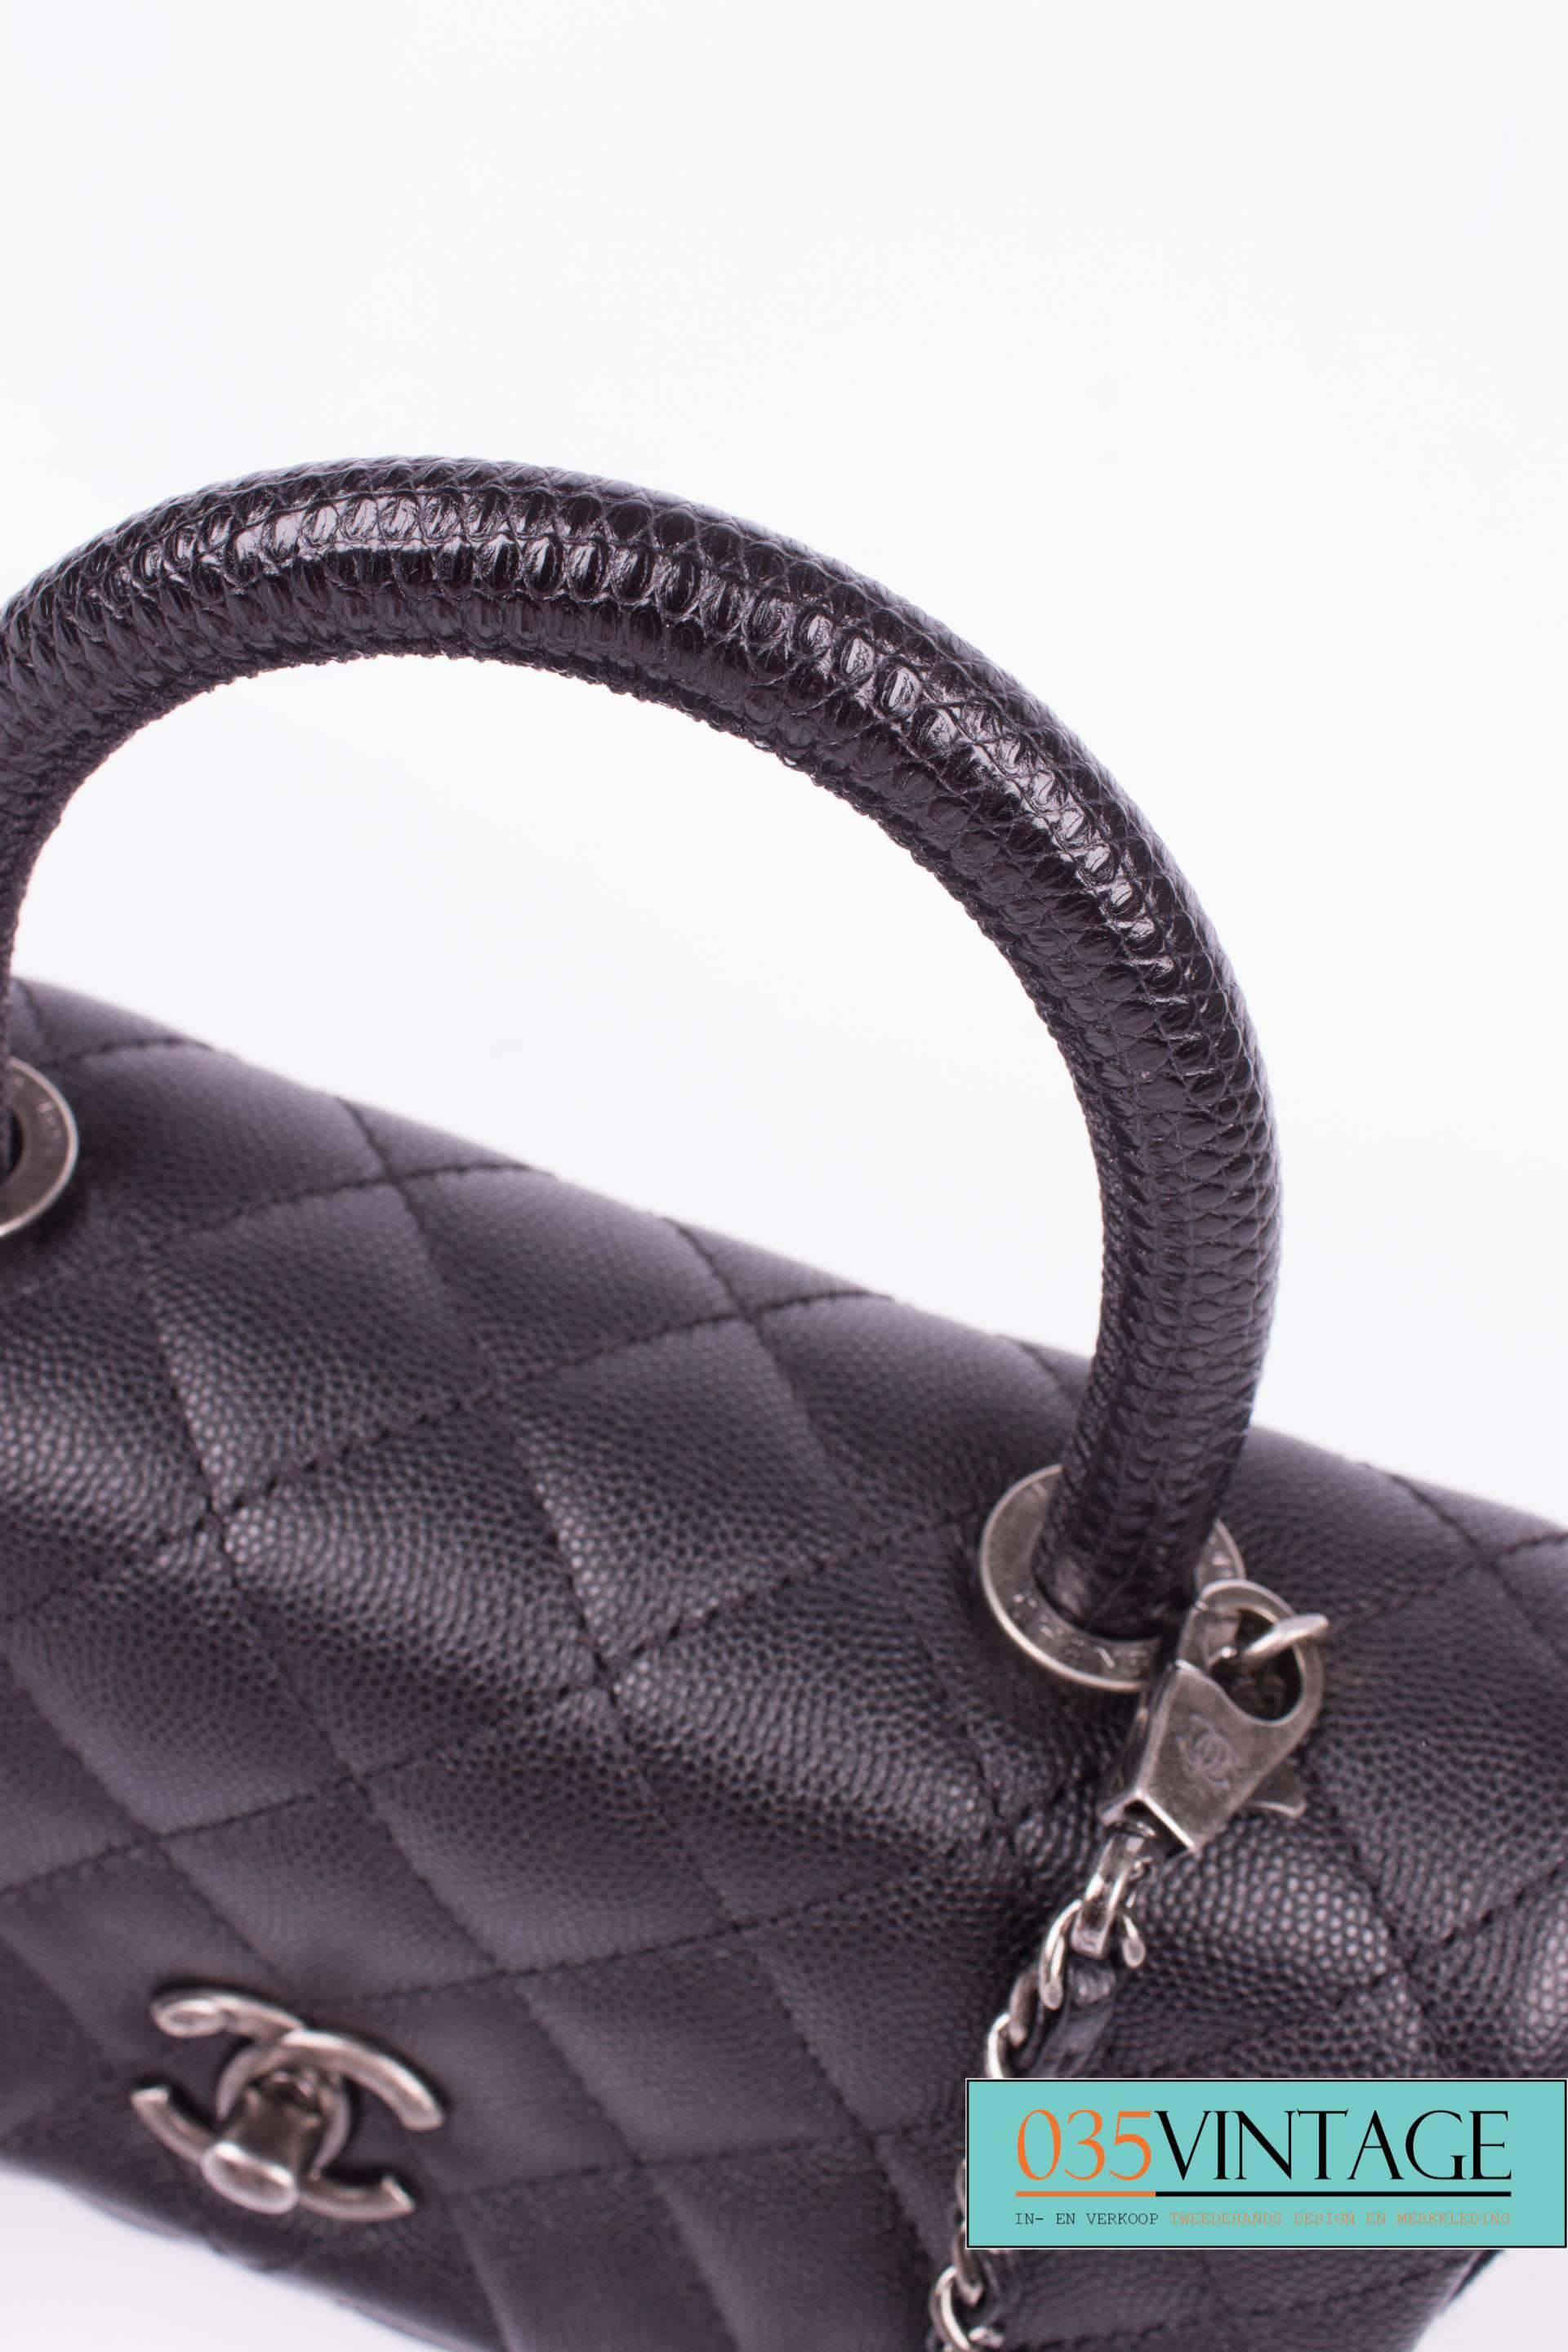 6f8d5358c894 Chanel Coco Handle Flap Bag Mini Lizard and Caviar Quilted Leather - black  at 1stdibs